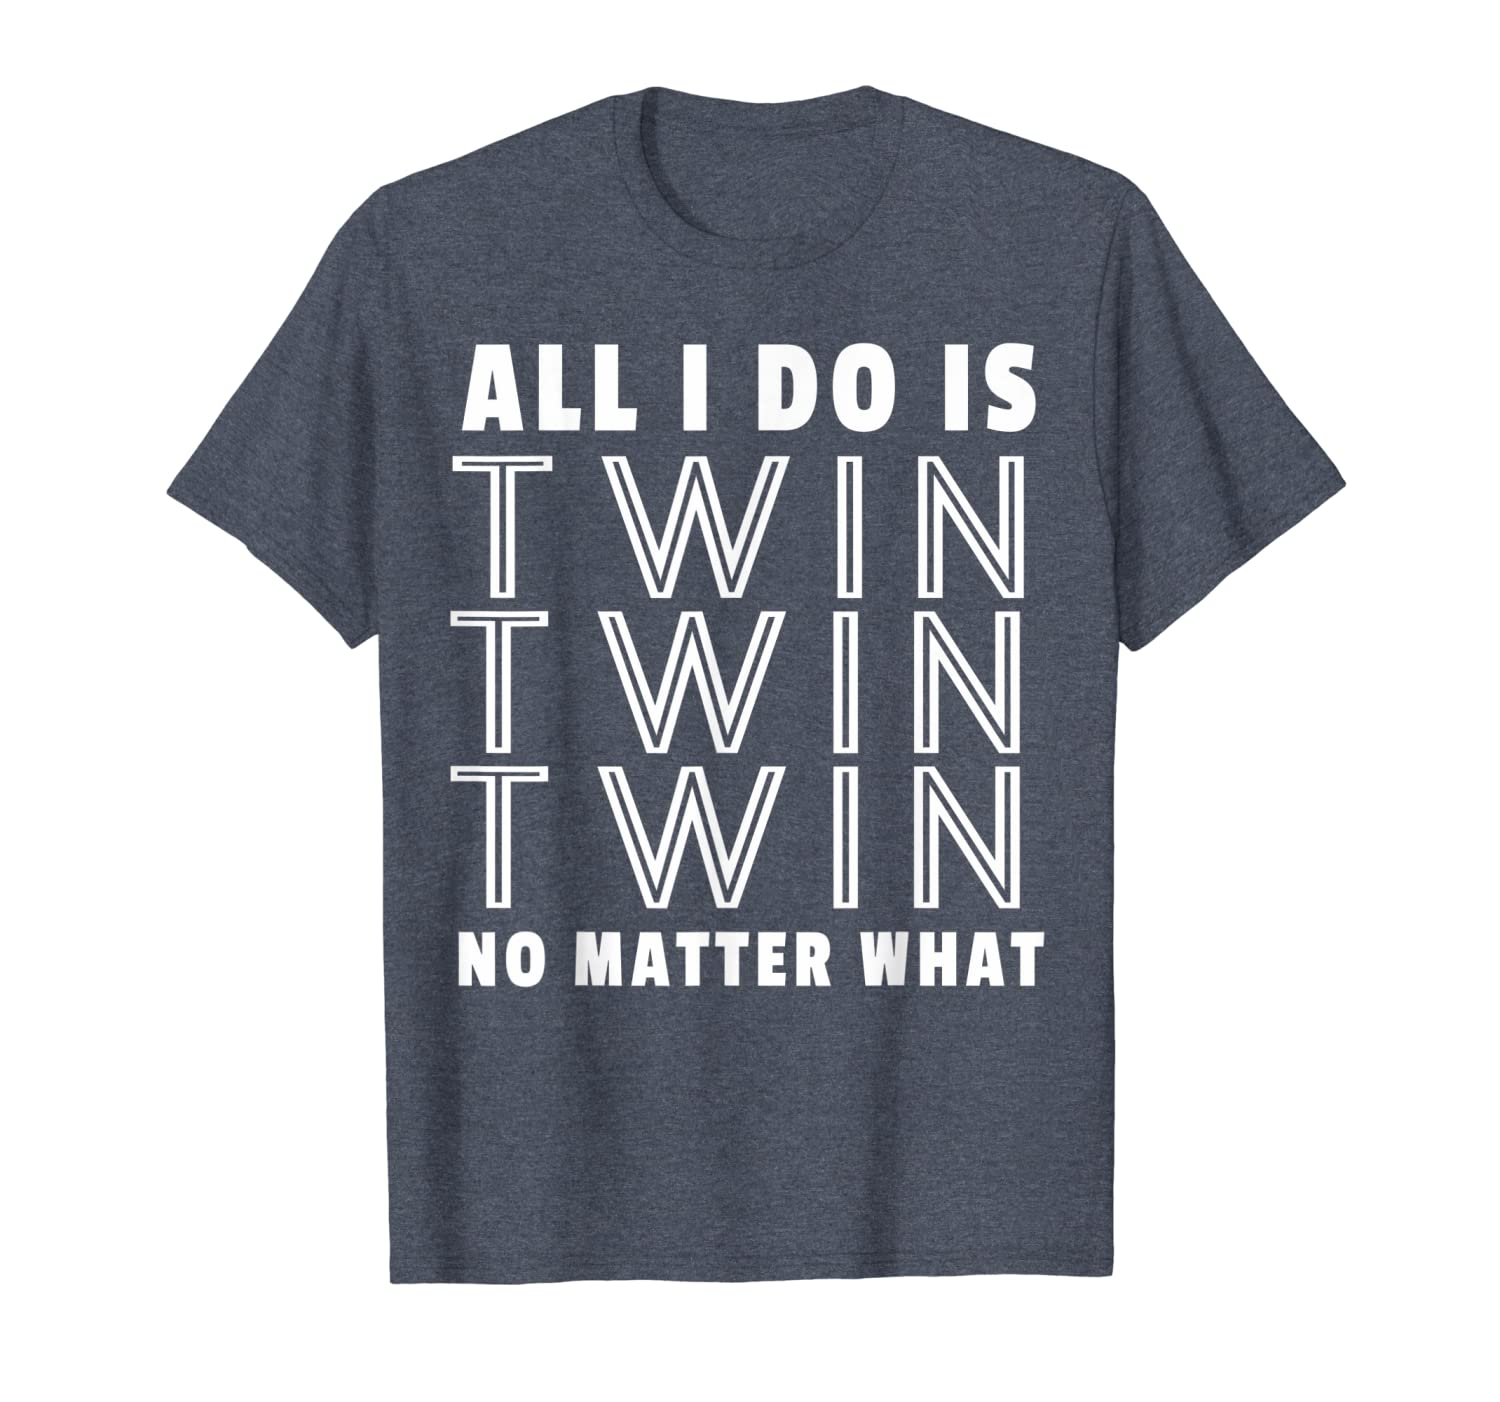 All I Do Is Twin - Funny Tee for Mommy & Dad of Twins-TH